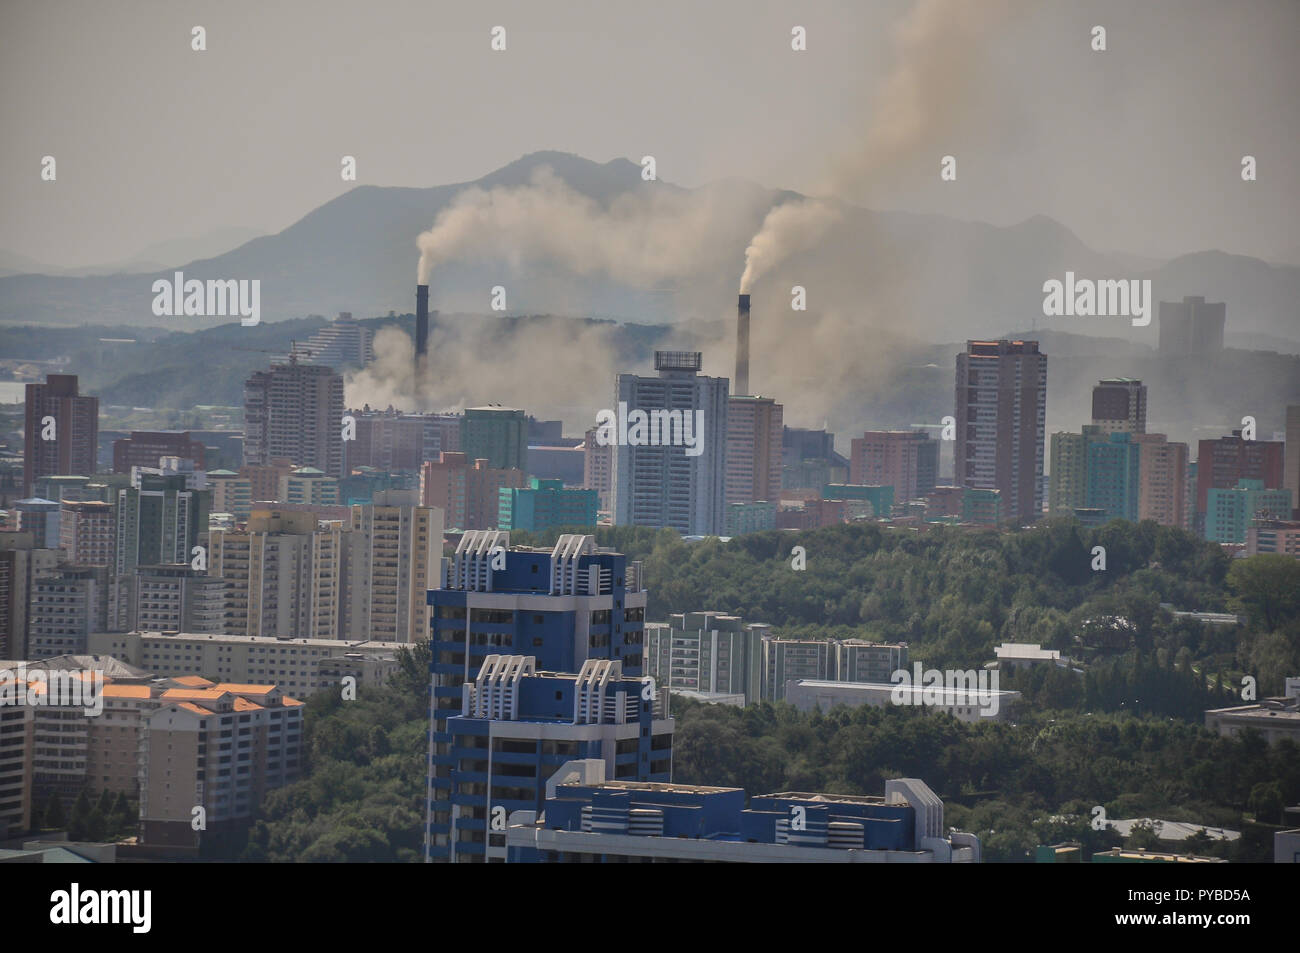 Although a lot brighter, Pyongyang still is seen as the darkest capital of the world. Old coal burning power plants from the communist era still pollu - Stock Image